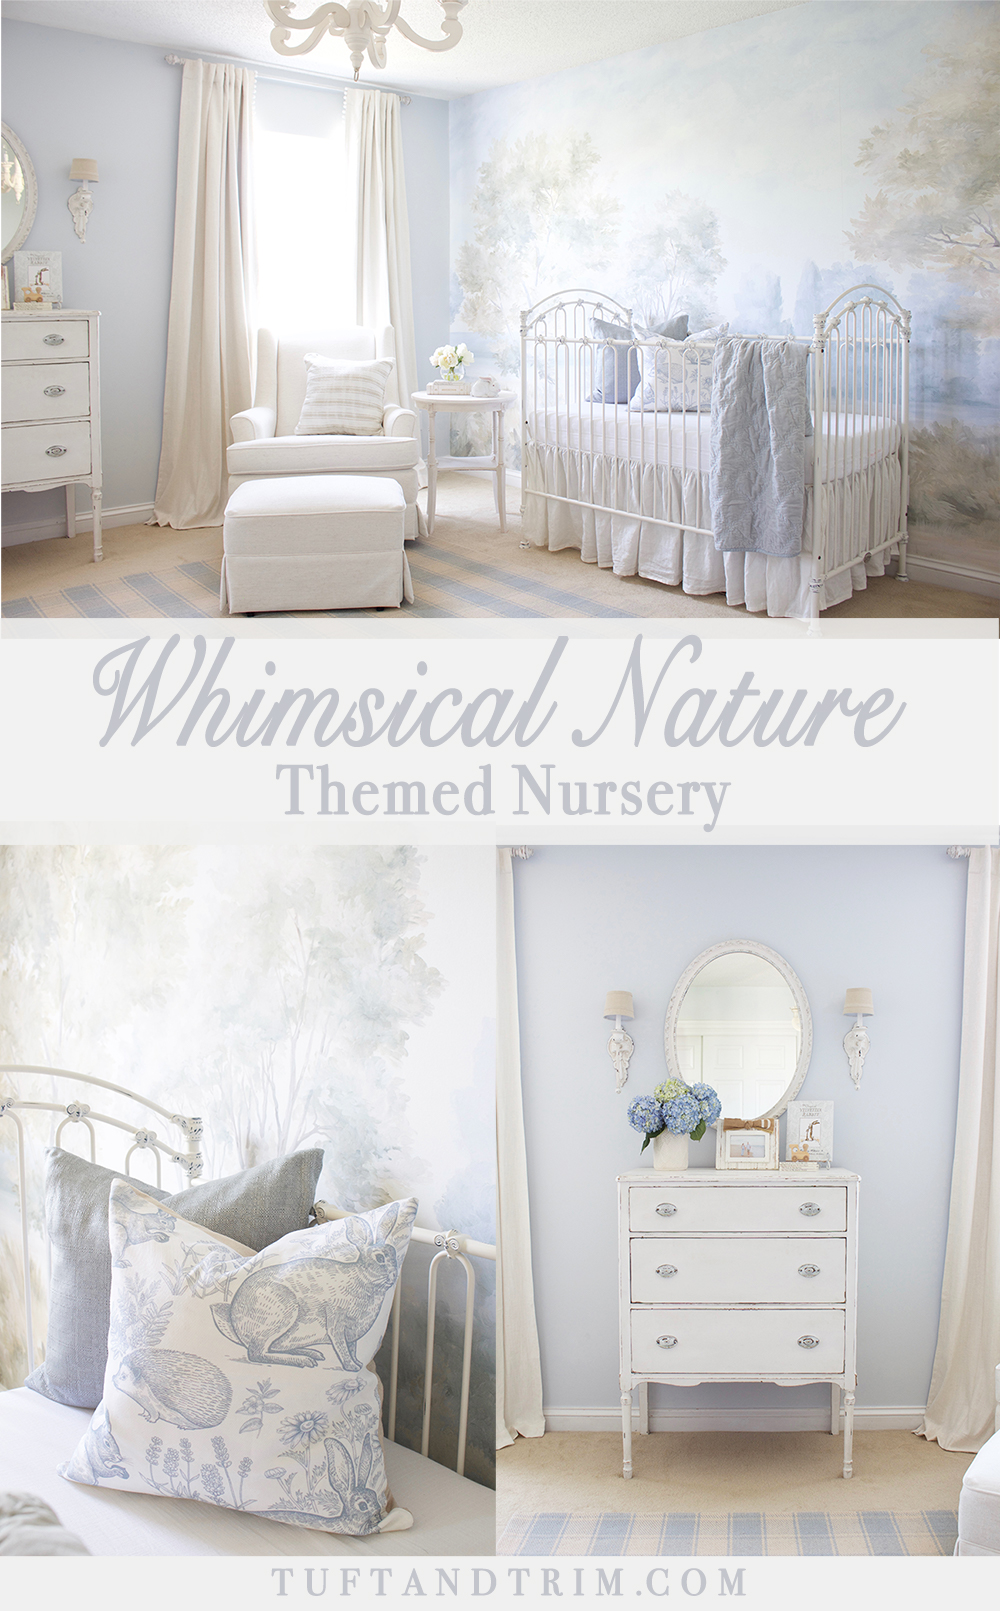 A Whimsical Nature Themed Nursery Fit For Prince Design By Tuft Trim Interior